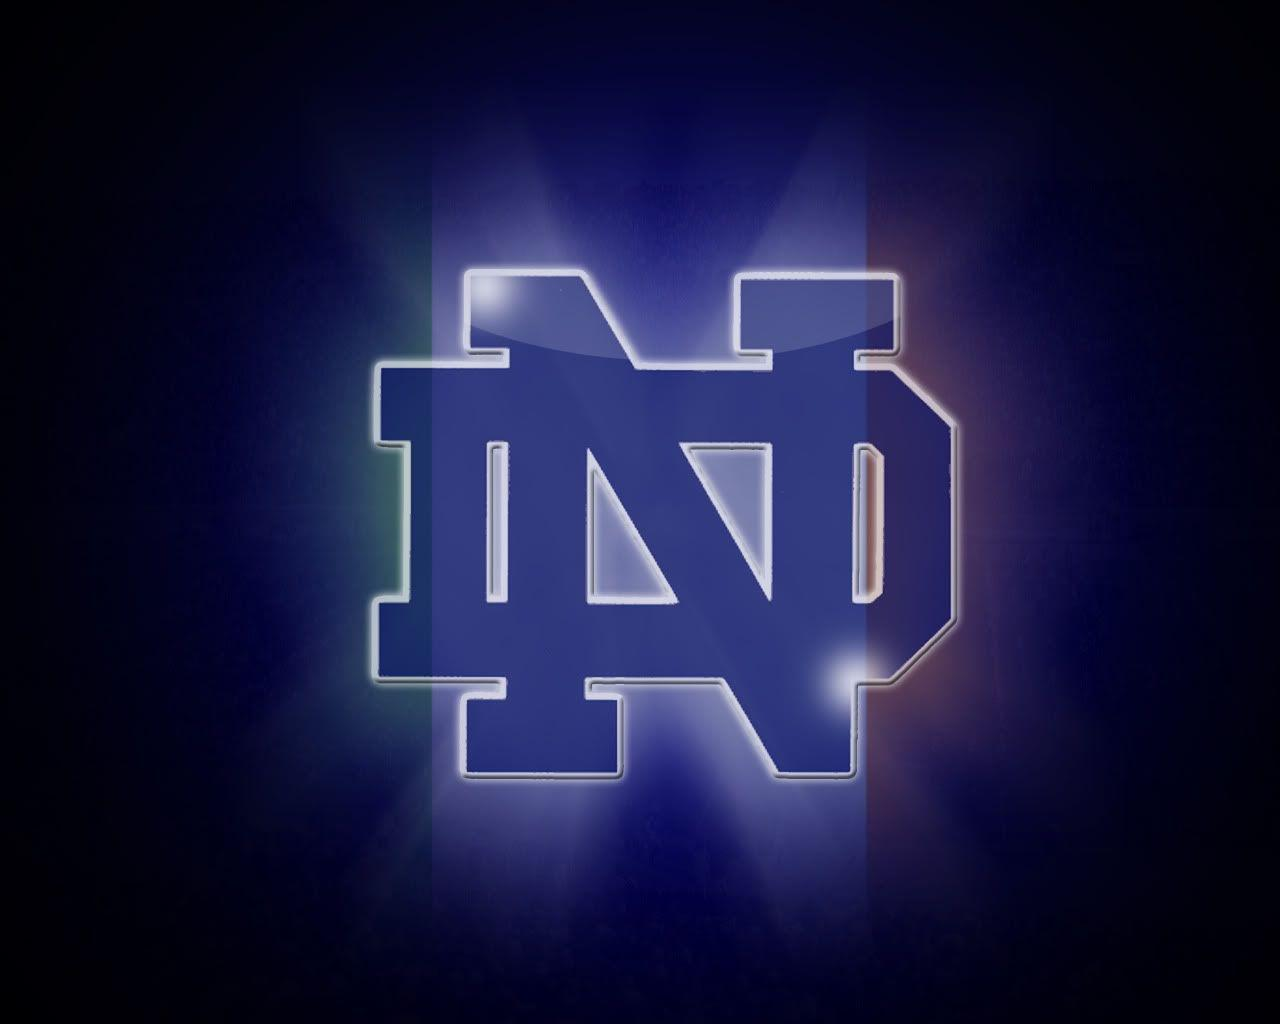 Notre dame wallpapers wallpaper cave - Notre dame football wallpaper ...